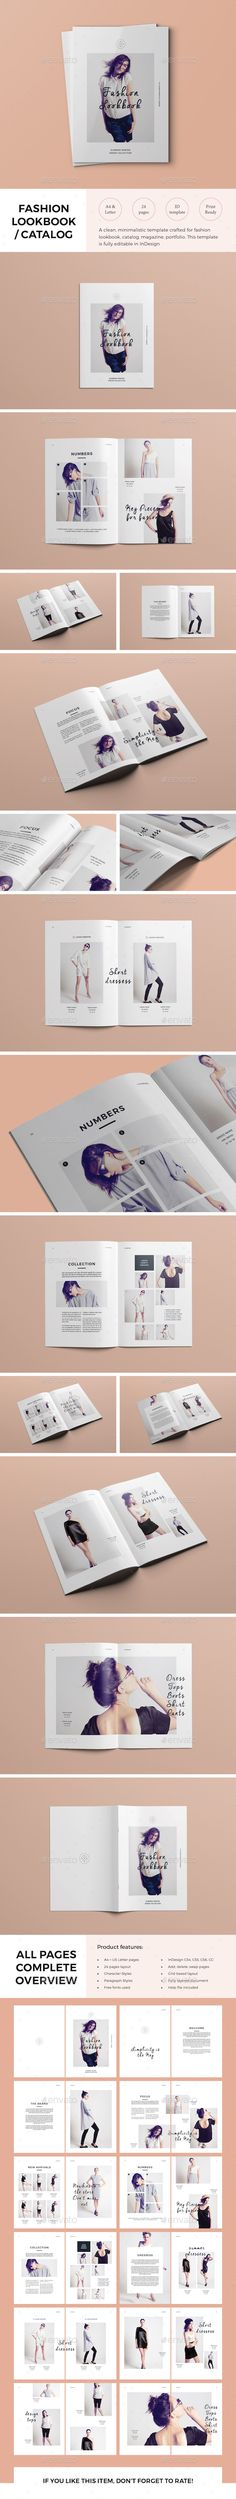 Fashion Lookbook / Catalog Template  — InDesign Template #print #clean • Download ➝ https://graphicriver.net/item/fashion-lookbook-catalog-template/14421576?ref=pxcr